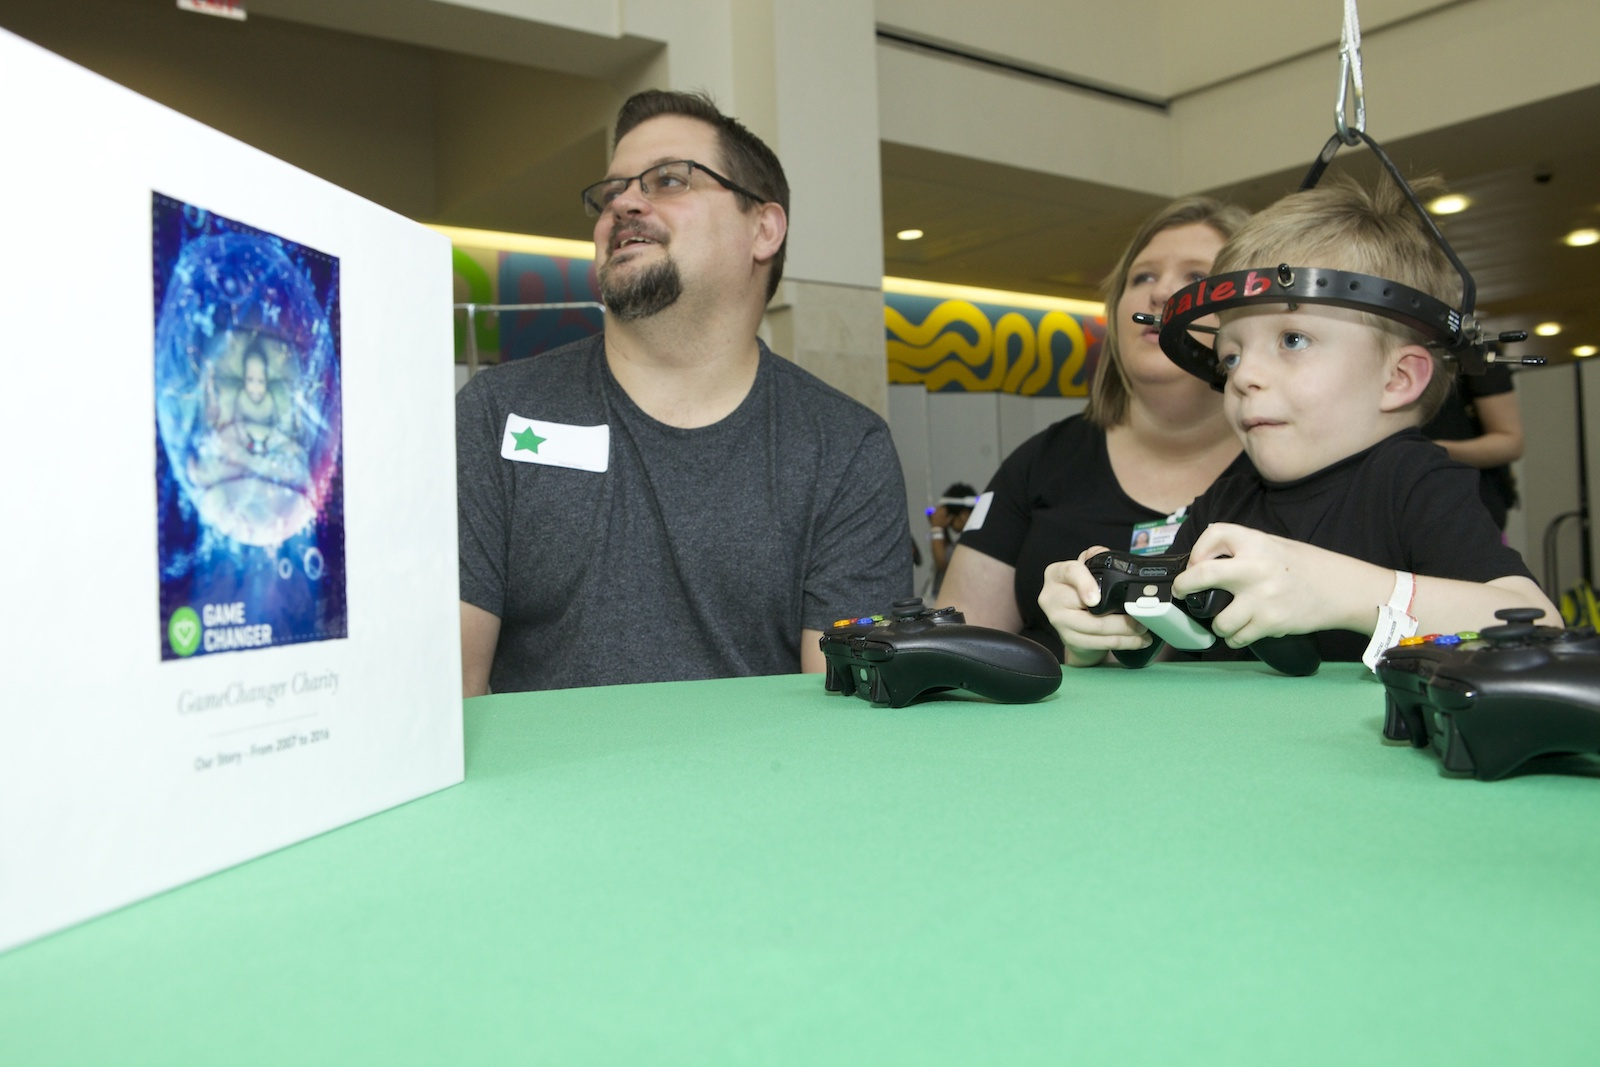 GameChanger brings virtual worlds to the kids who need it most